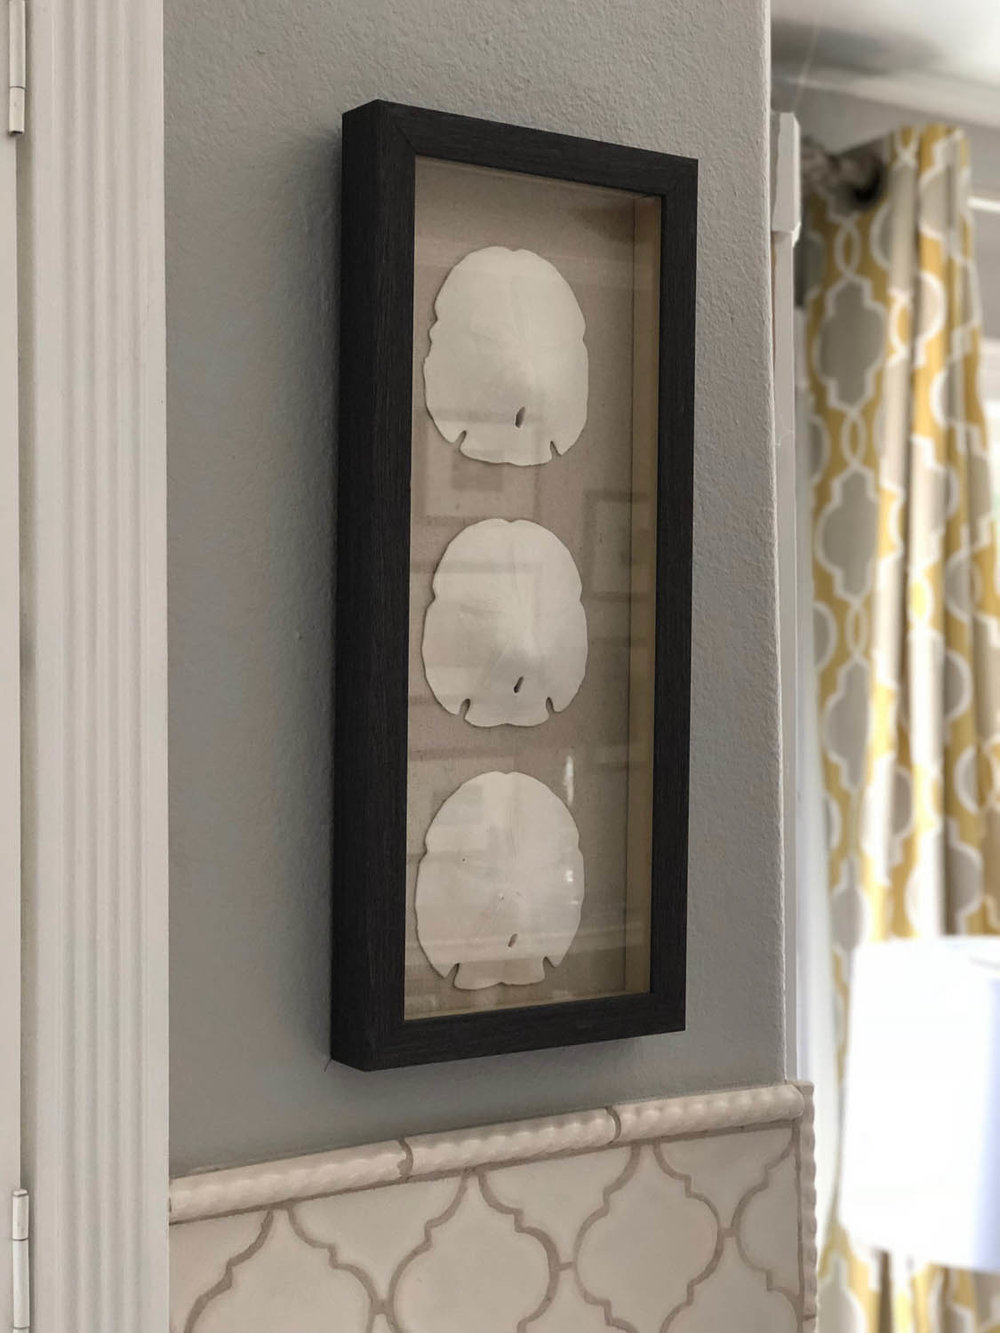 easy DIY shadow box displaying sand dollar memory collection